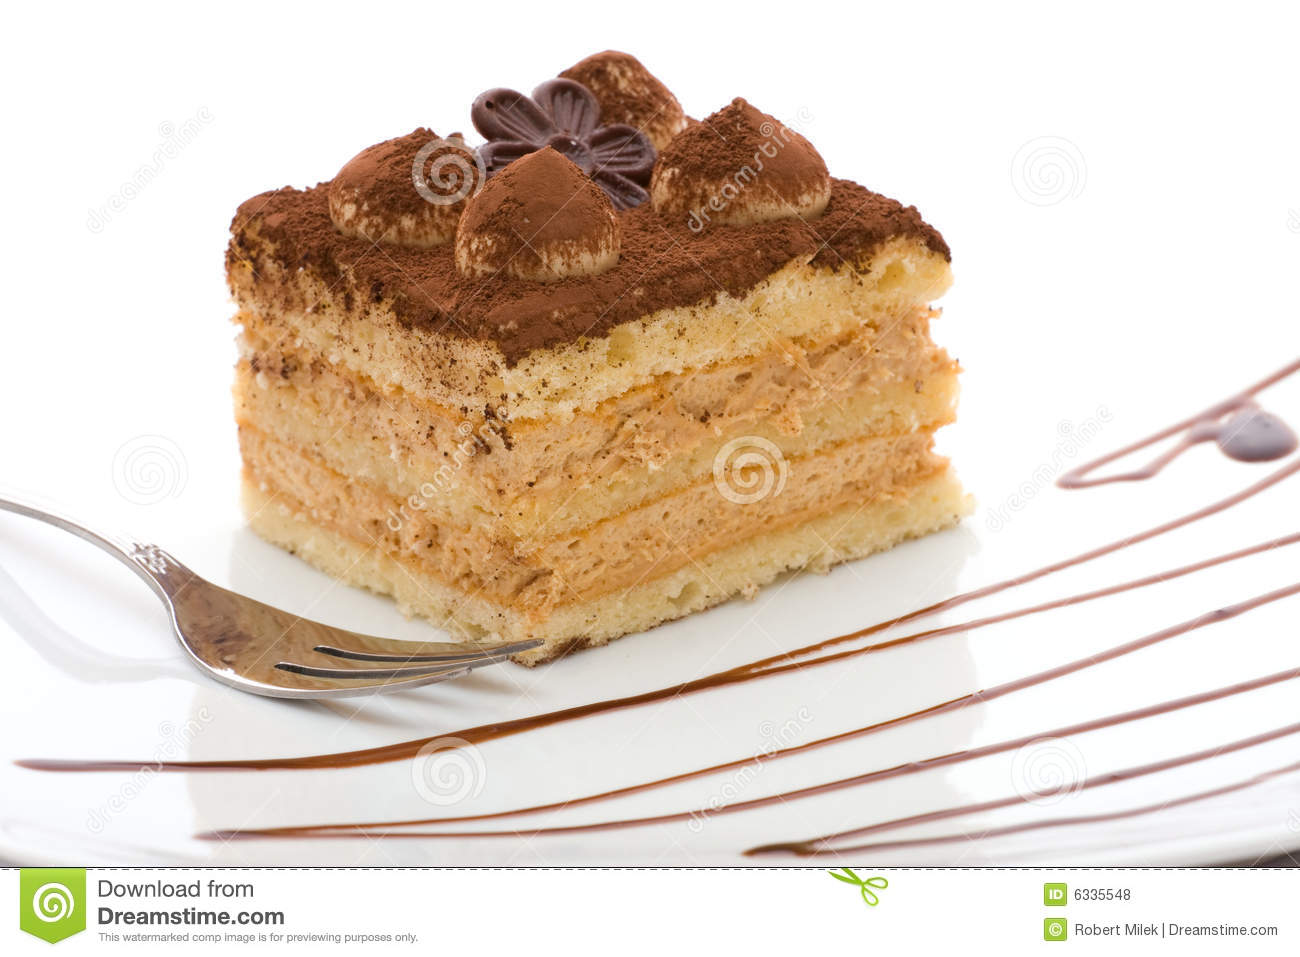 Tiramisu Dessert Royalty Free Stock Photos - Image: 6335548